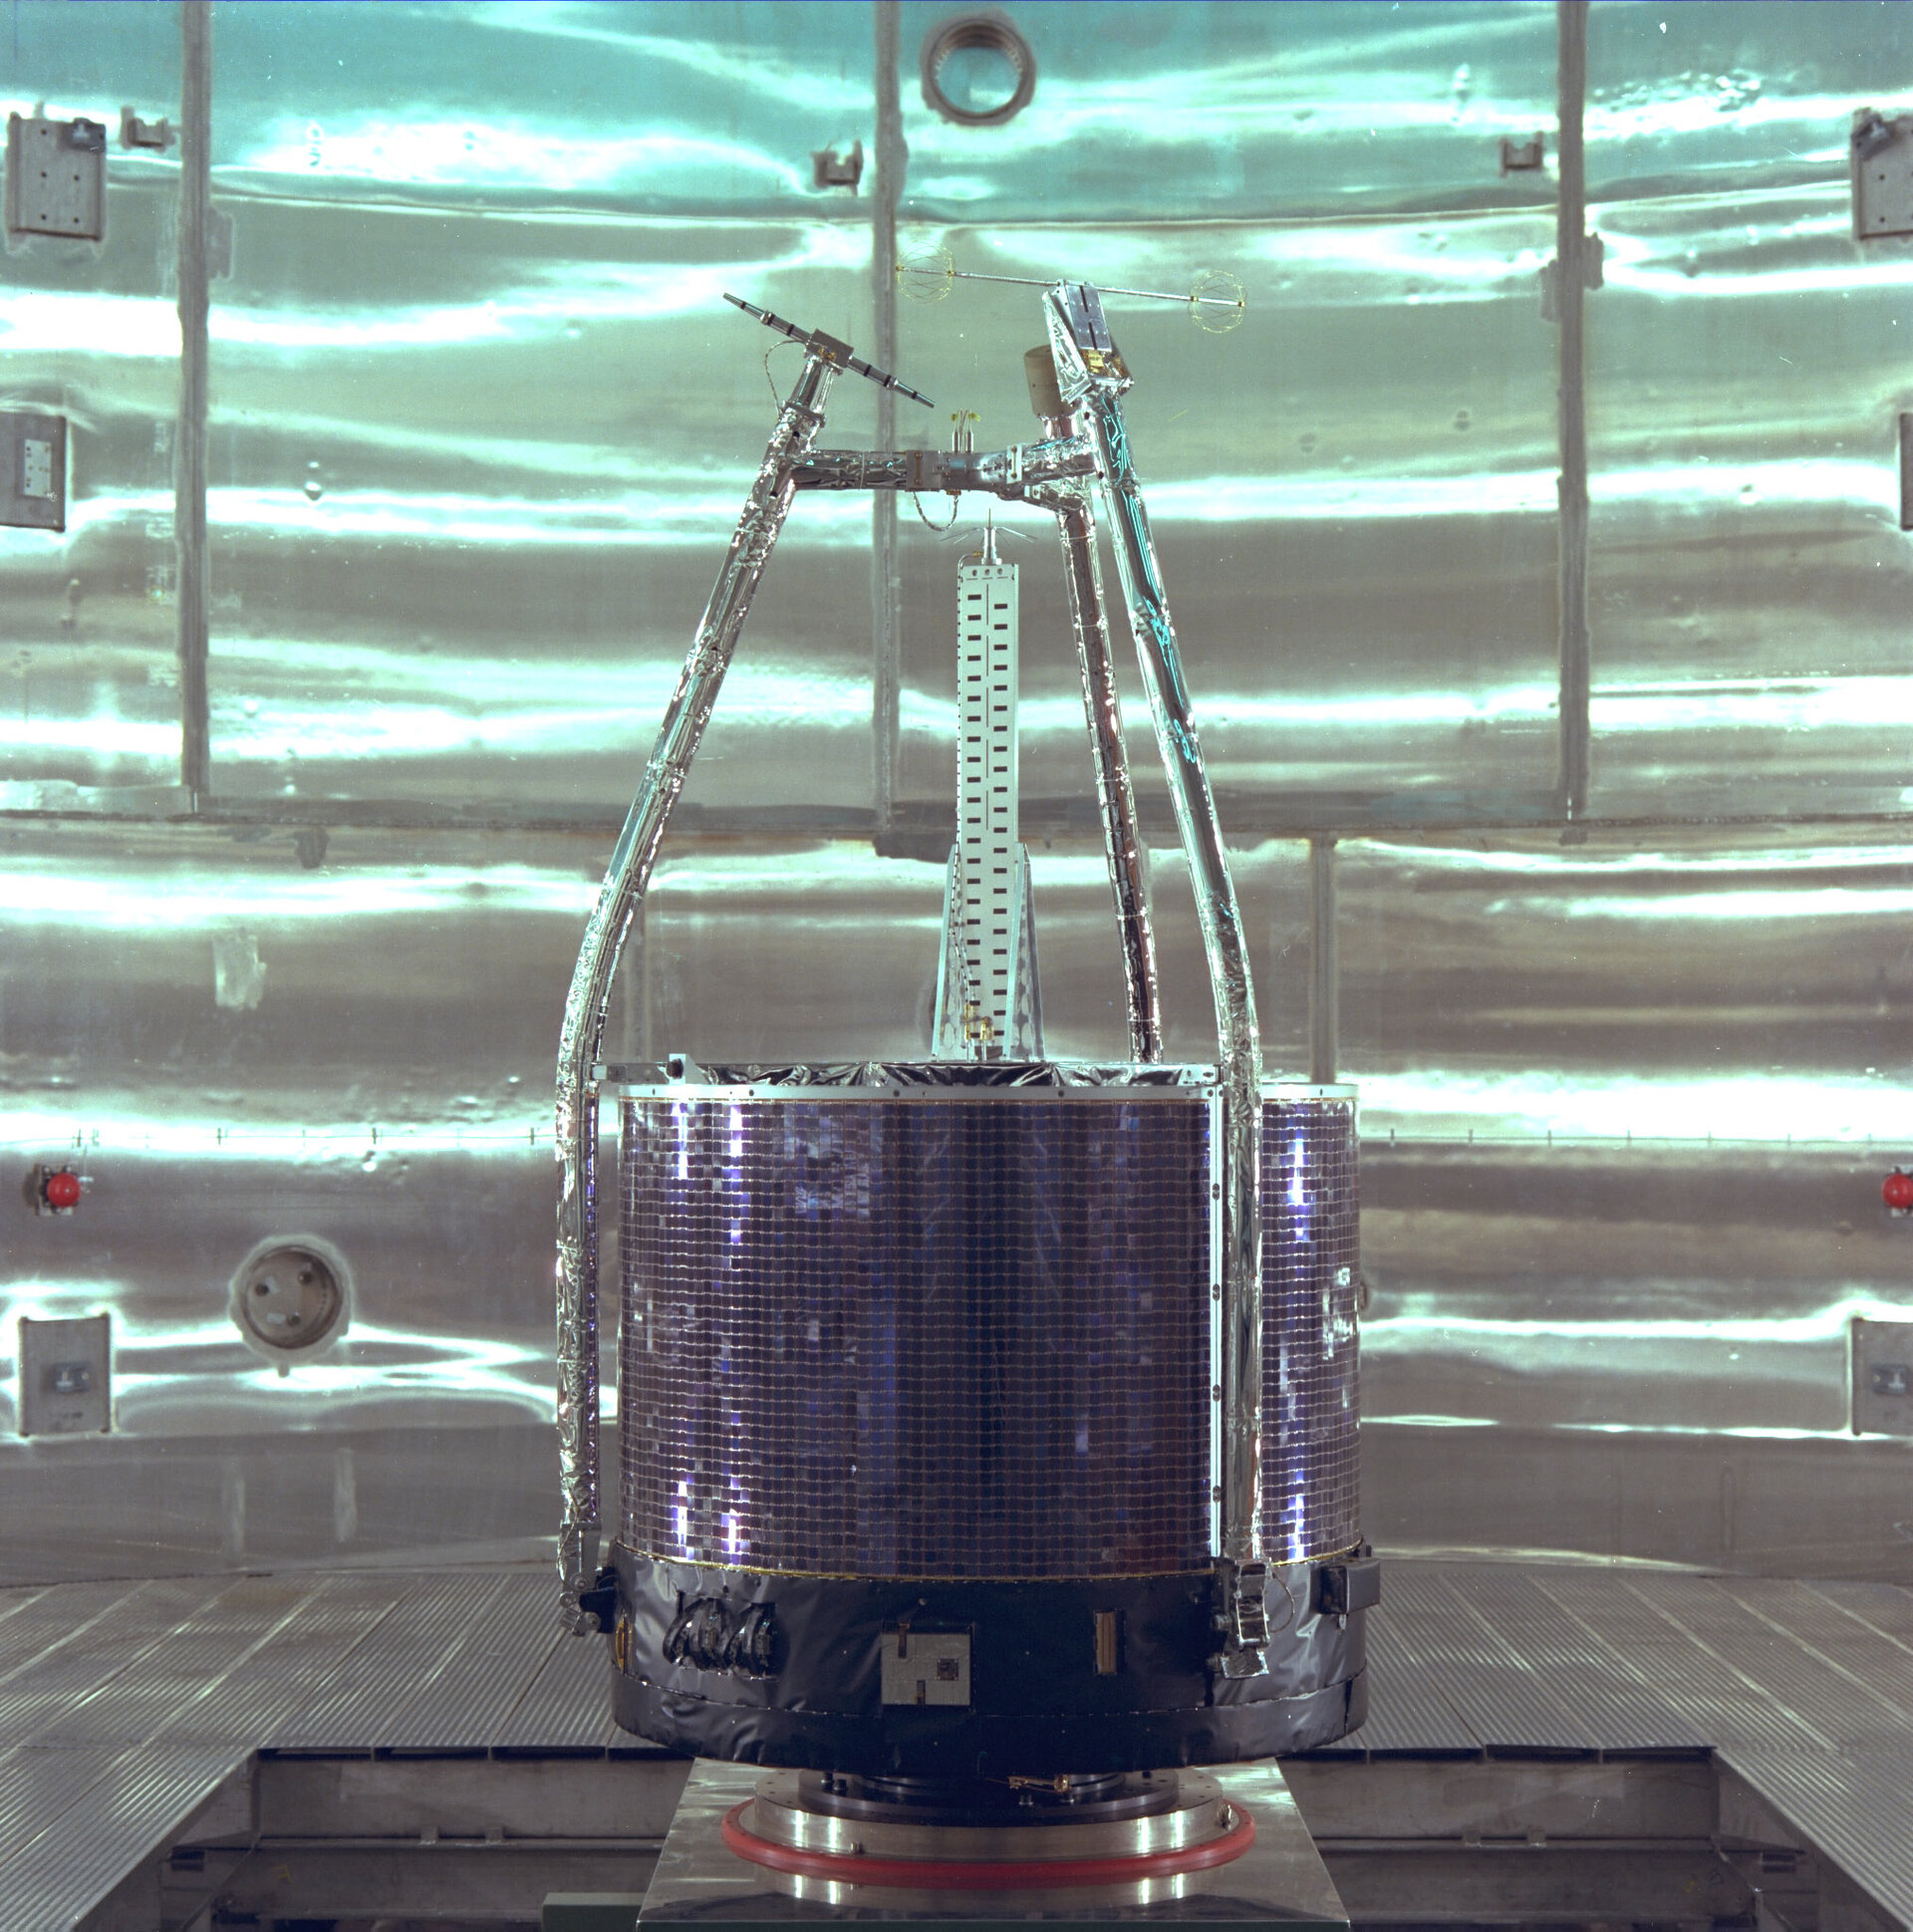 ESA's ISEE-2 satellite about to undergo balancing tests in ESTEC's Test Centre